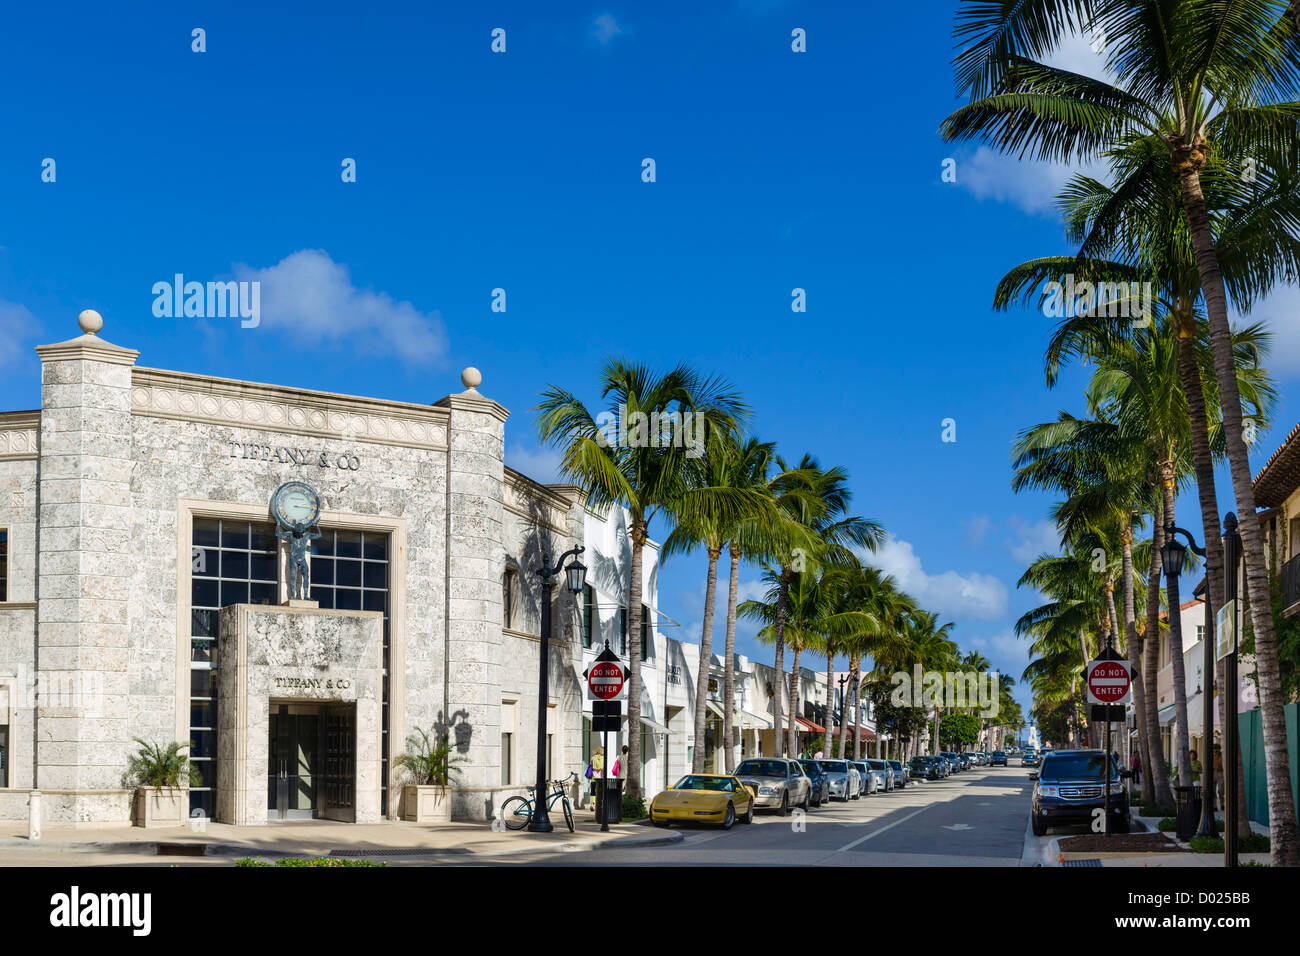 Stores on Worth Avenue in downtown Palm Beach with Tiffany & Co to the left, Palm Beach County, Treasure Coast, Stock Photo